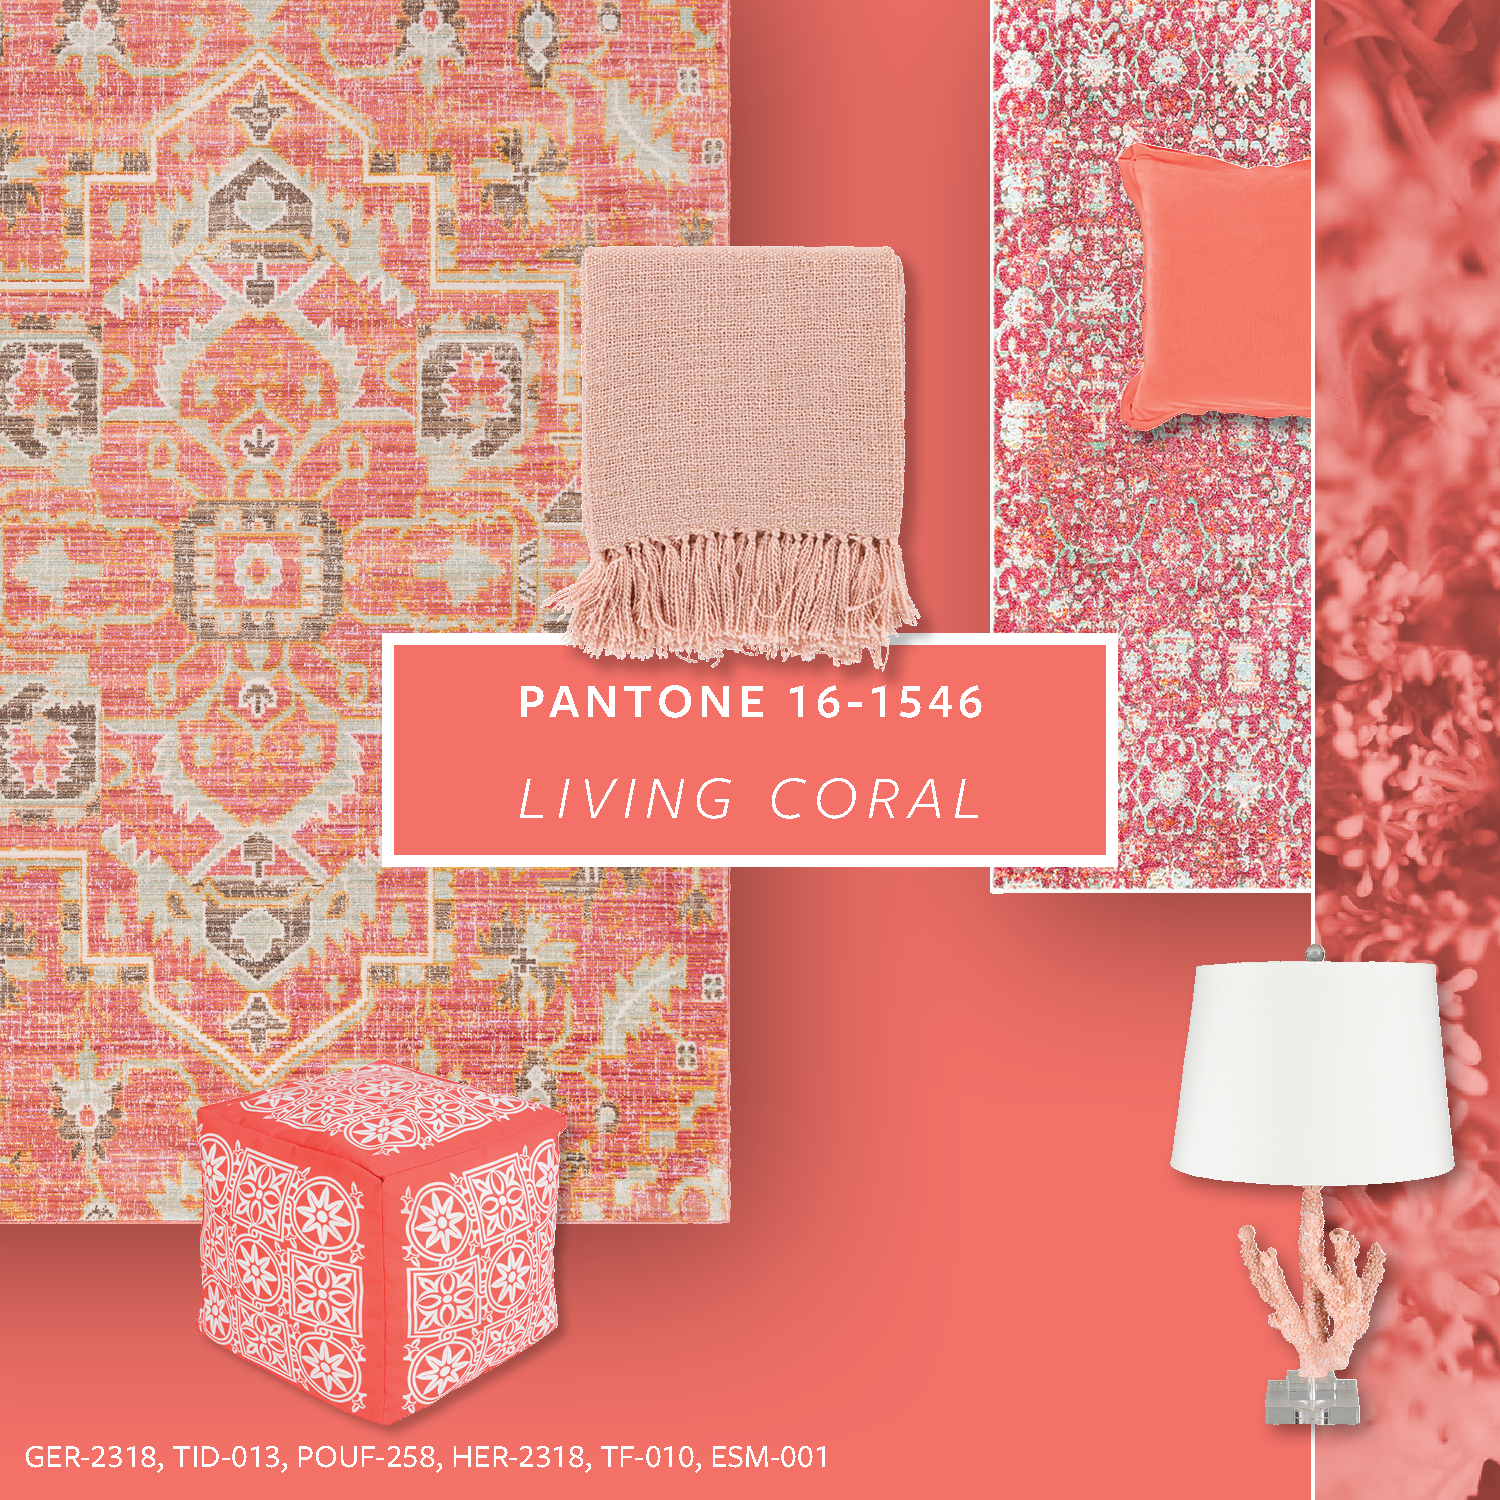 "Pantone positions Living Coral as a ""vibrant yet mellow"" color that provides warmth, comfort and buoyancy in today's ever-changing environment."